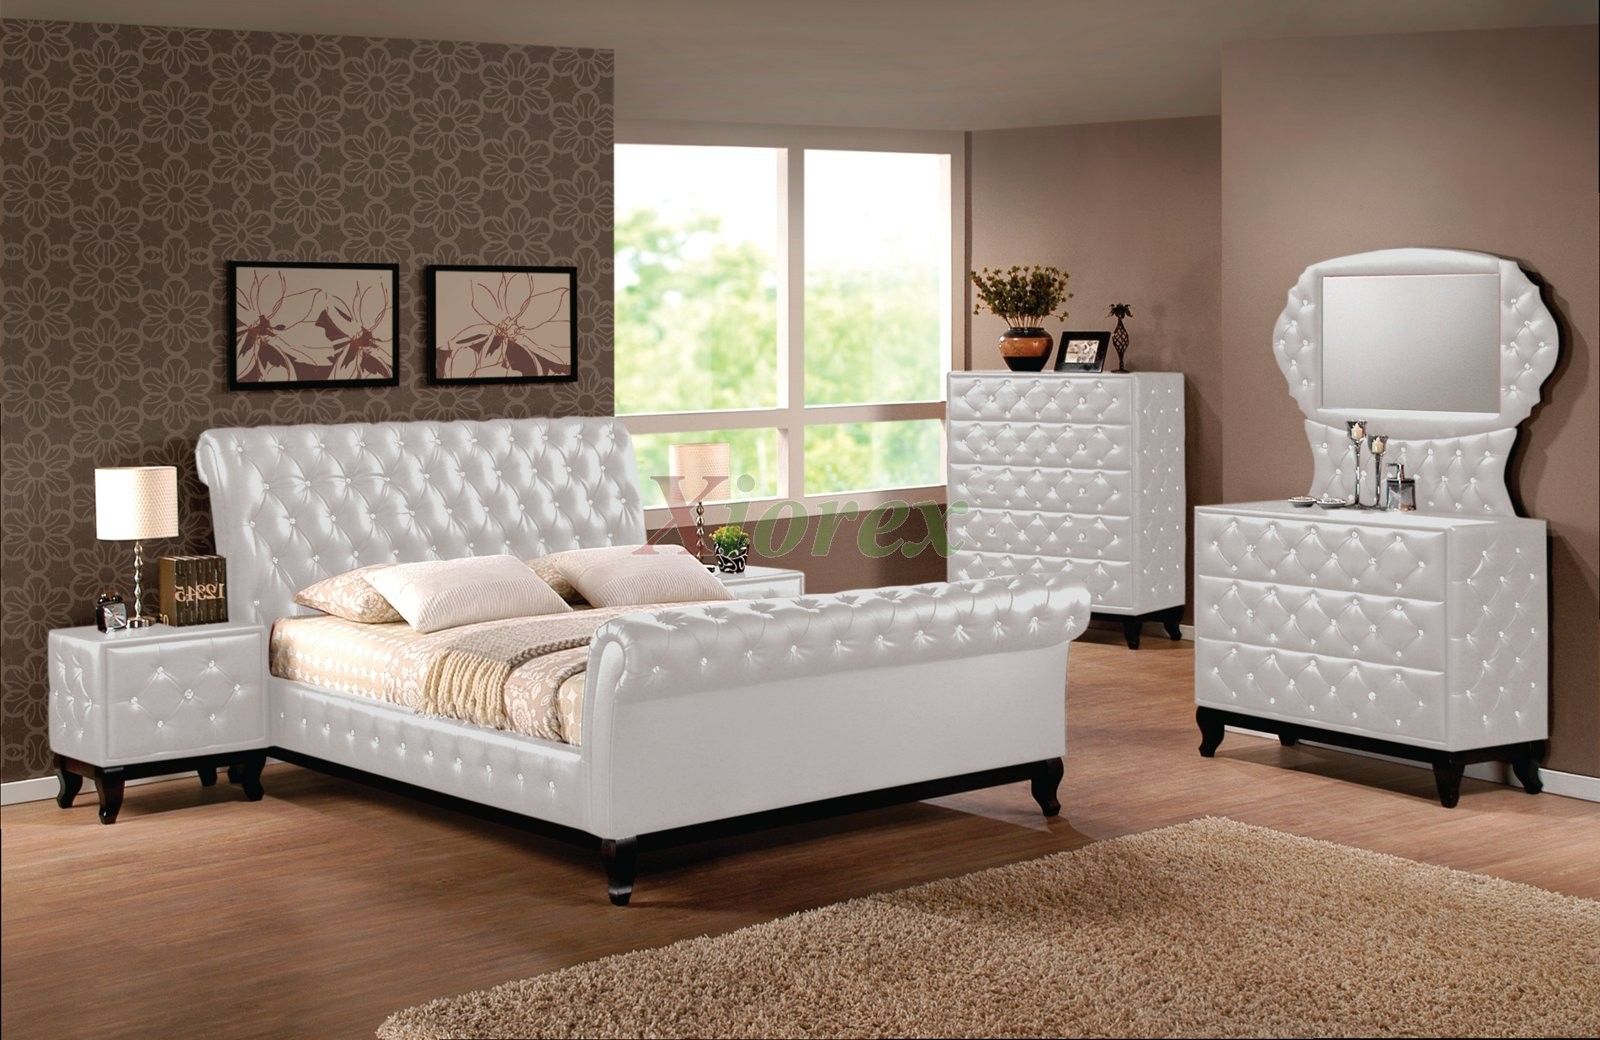 Upholstered Sleigh Platform Bedroom Sets with Sleigh Queen Bed and King Bed    Xiorex. Upholstered Sleigh Platform Bedroom Furniture Set 151   Xiorex